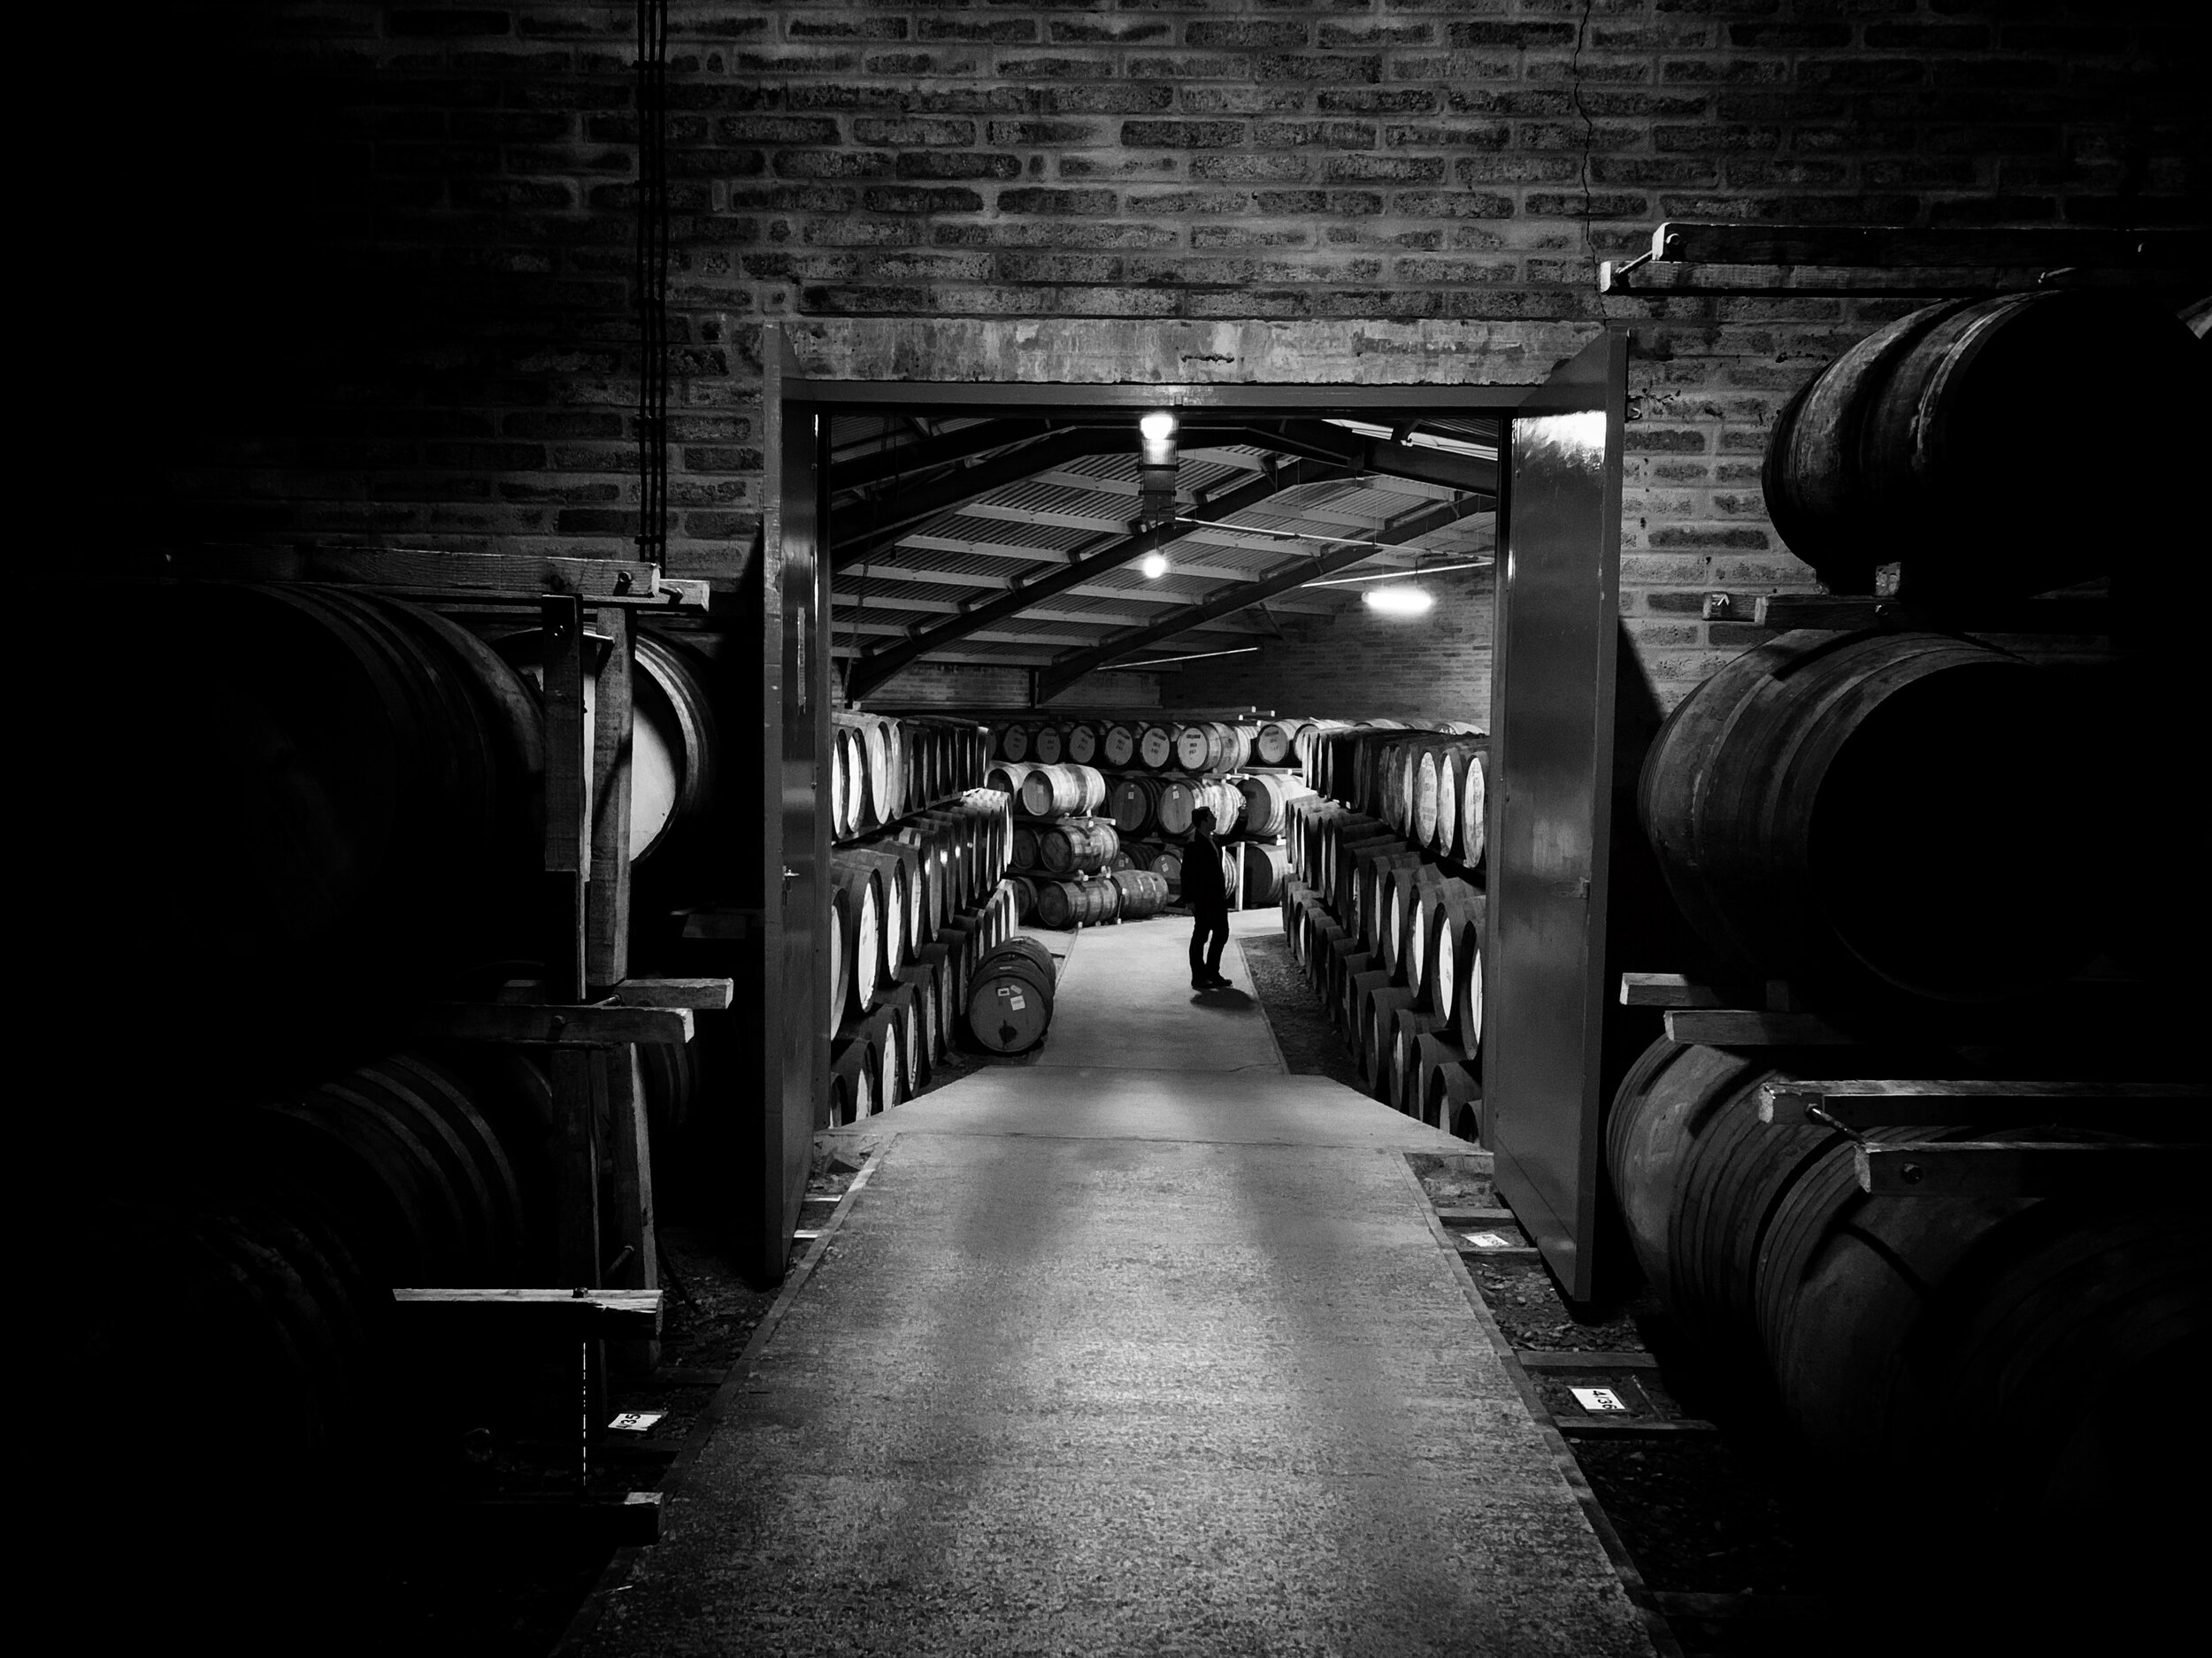 SEARCHING FOR TREASURE - We travel throughout the year to search through warehouses and cellars for exceptional casks to share with our whisky friends. For us, good whisky is not good enough. We want to find the extraordinary.